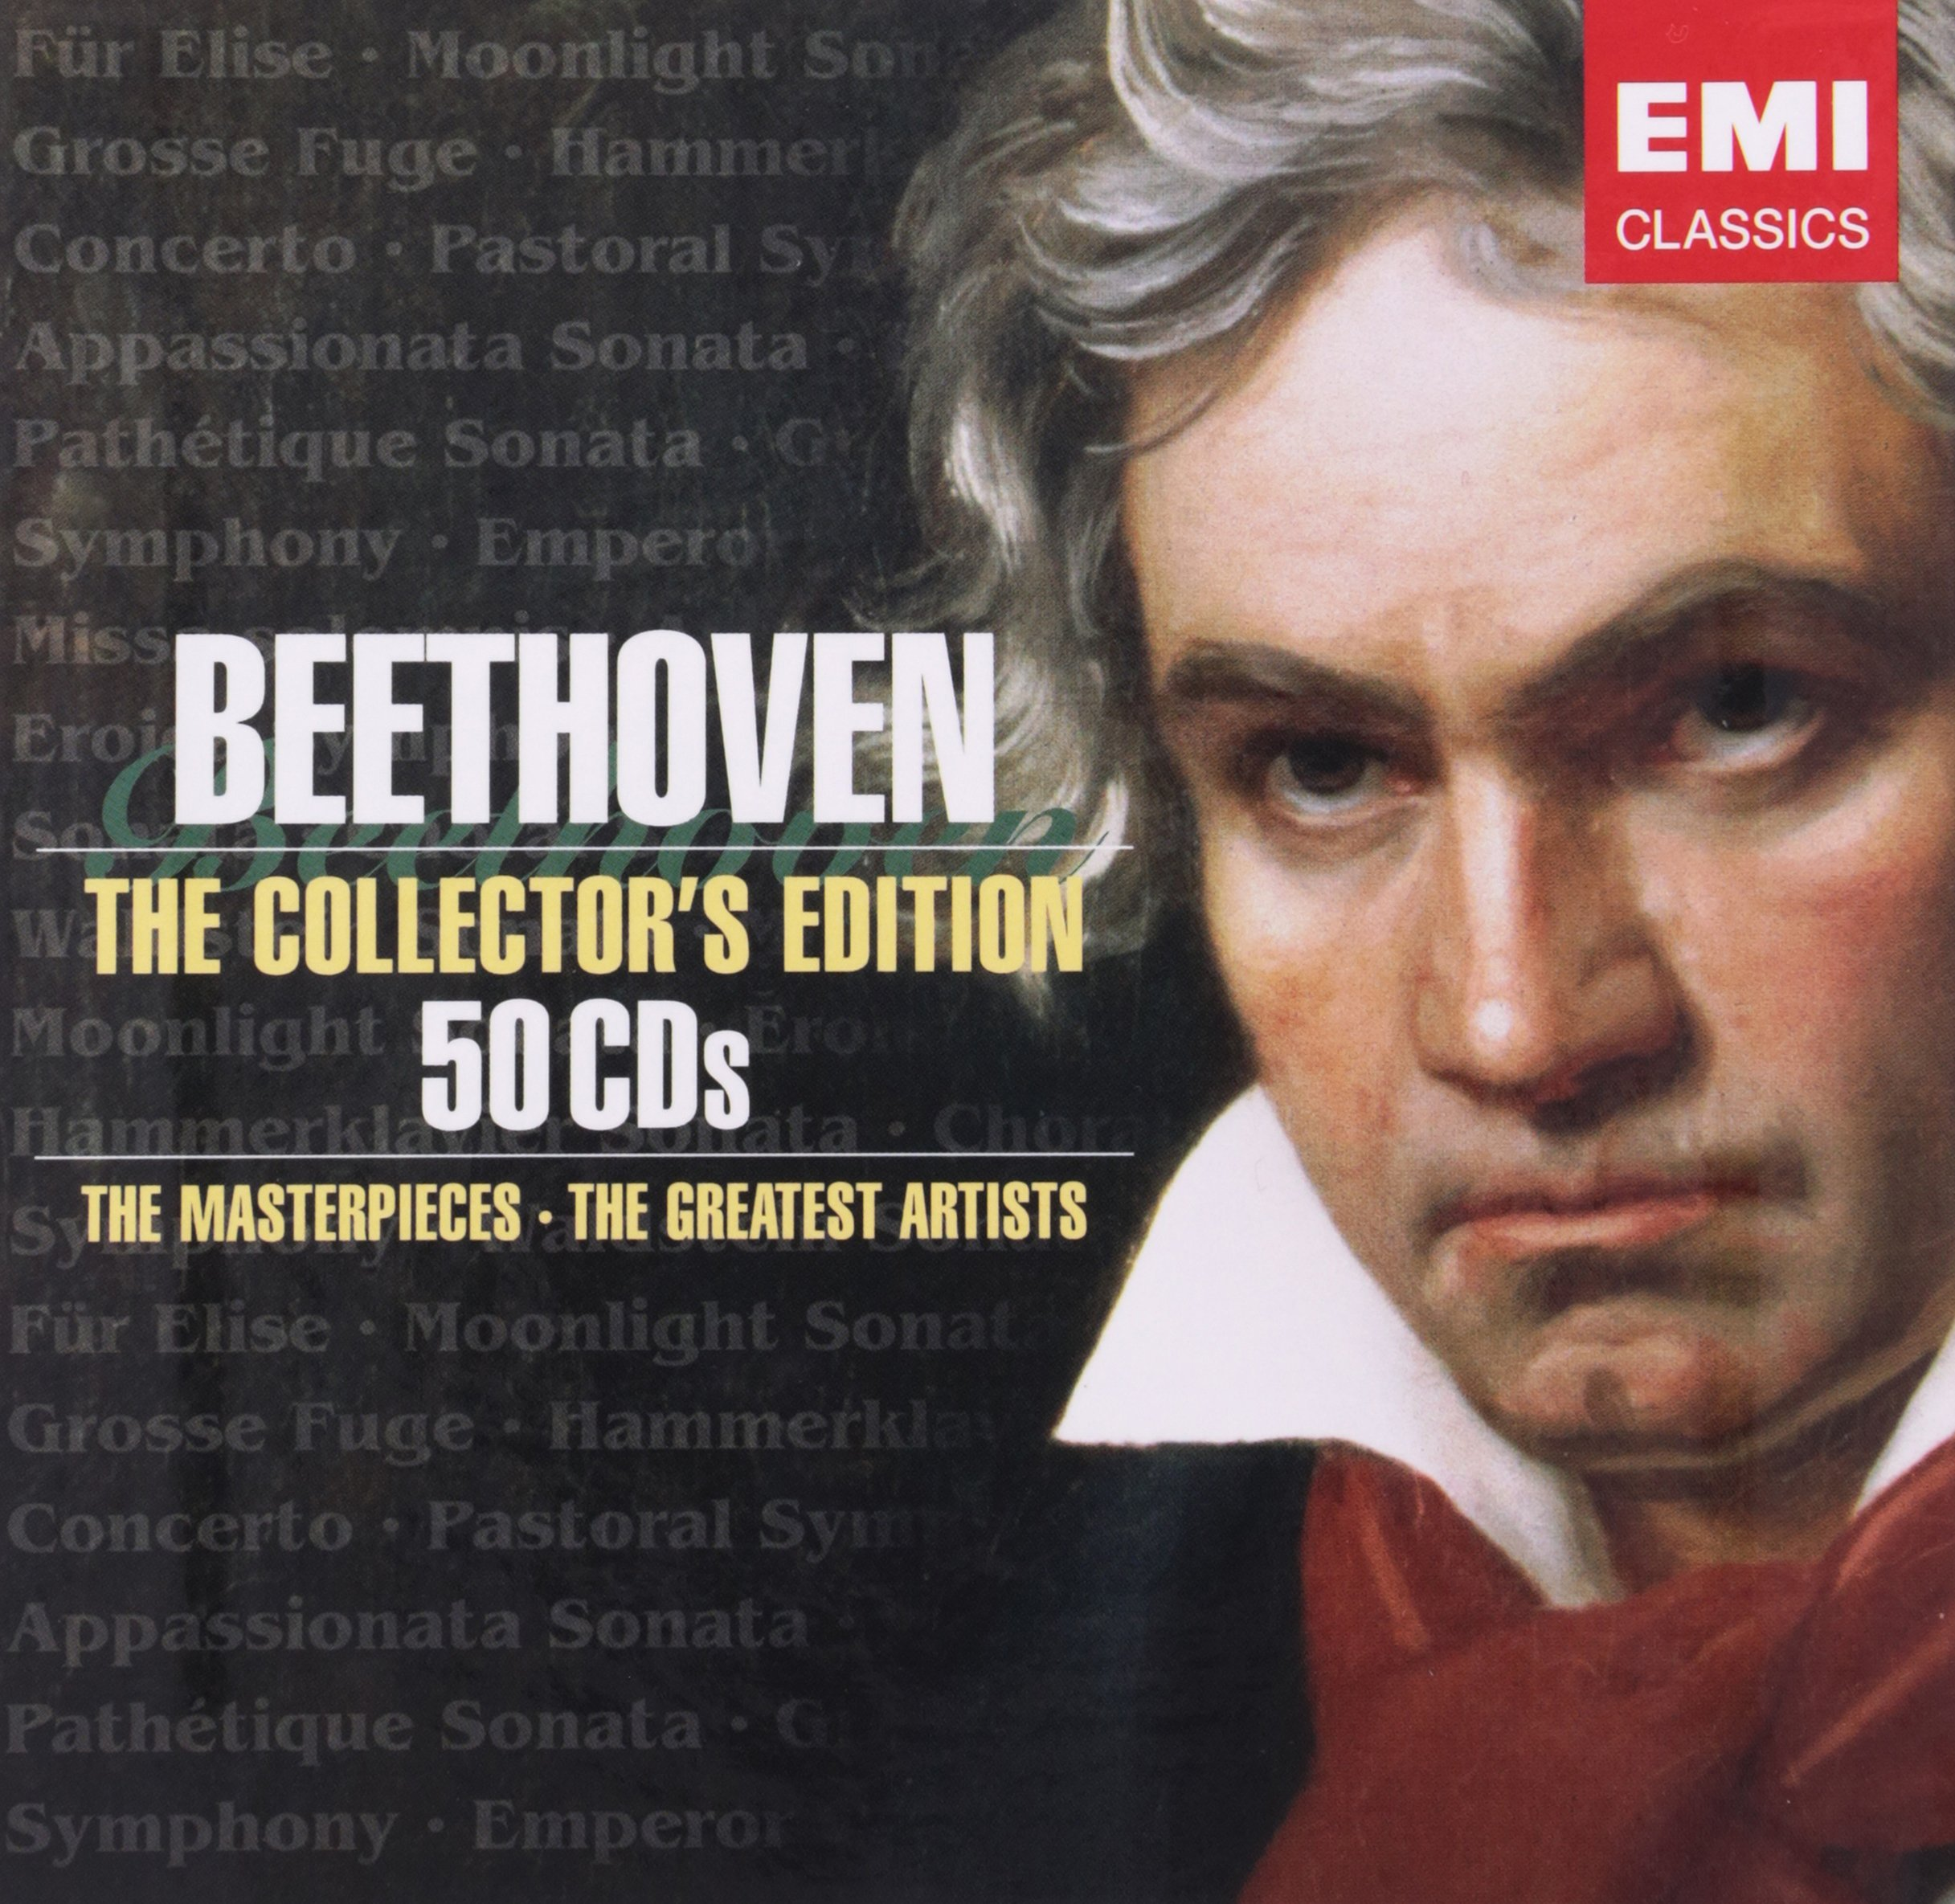 Beethoven: The Collector's Edition by EMI Classics